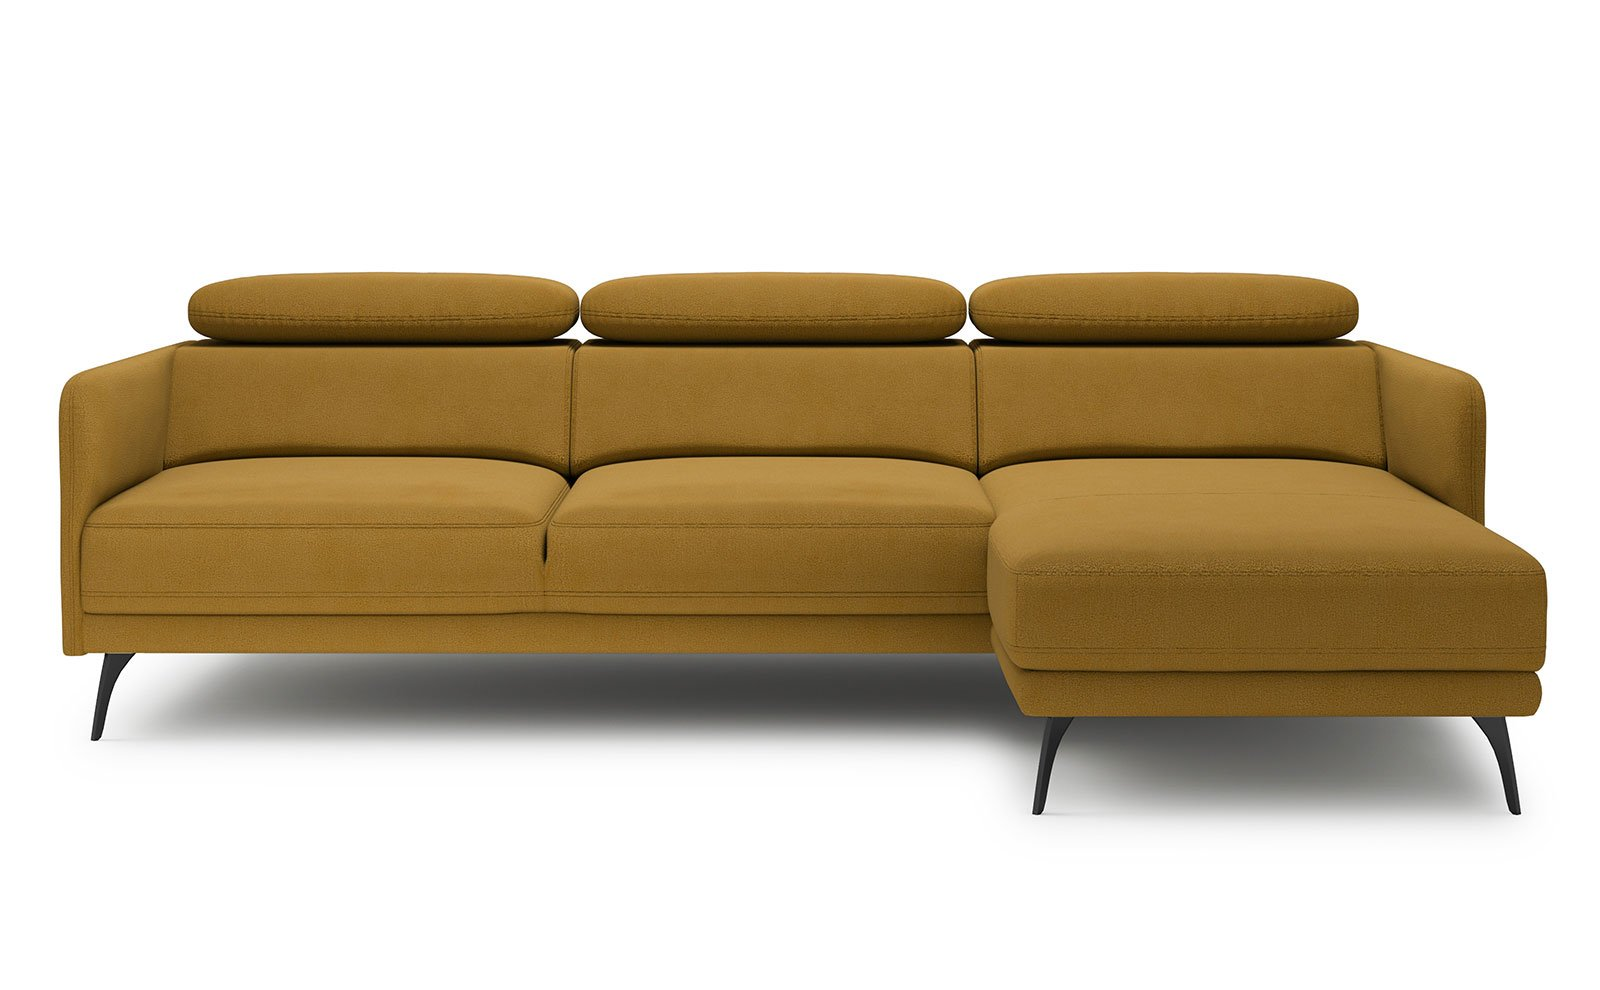 Sidolo Small Corner Sofa - soft touch mustard